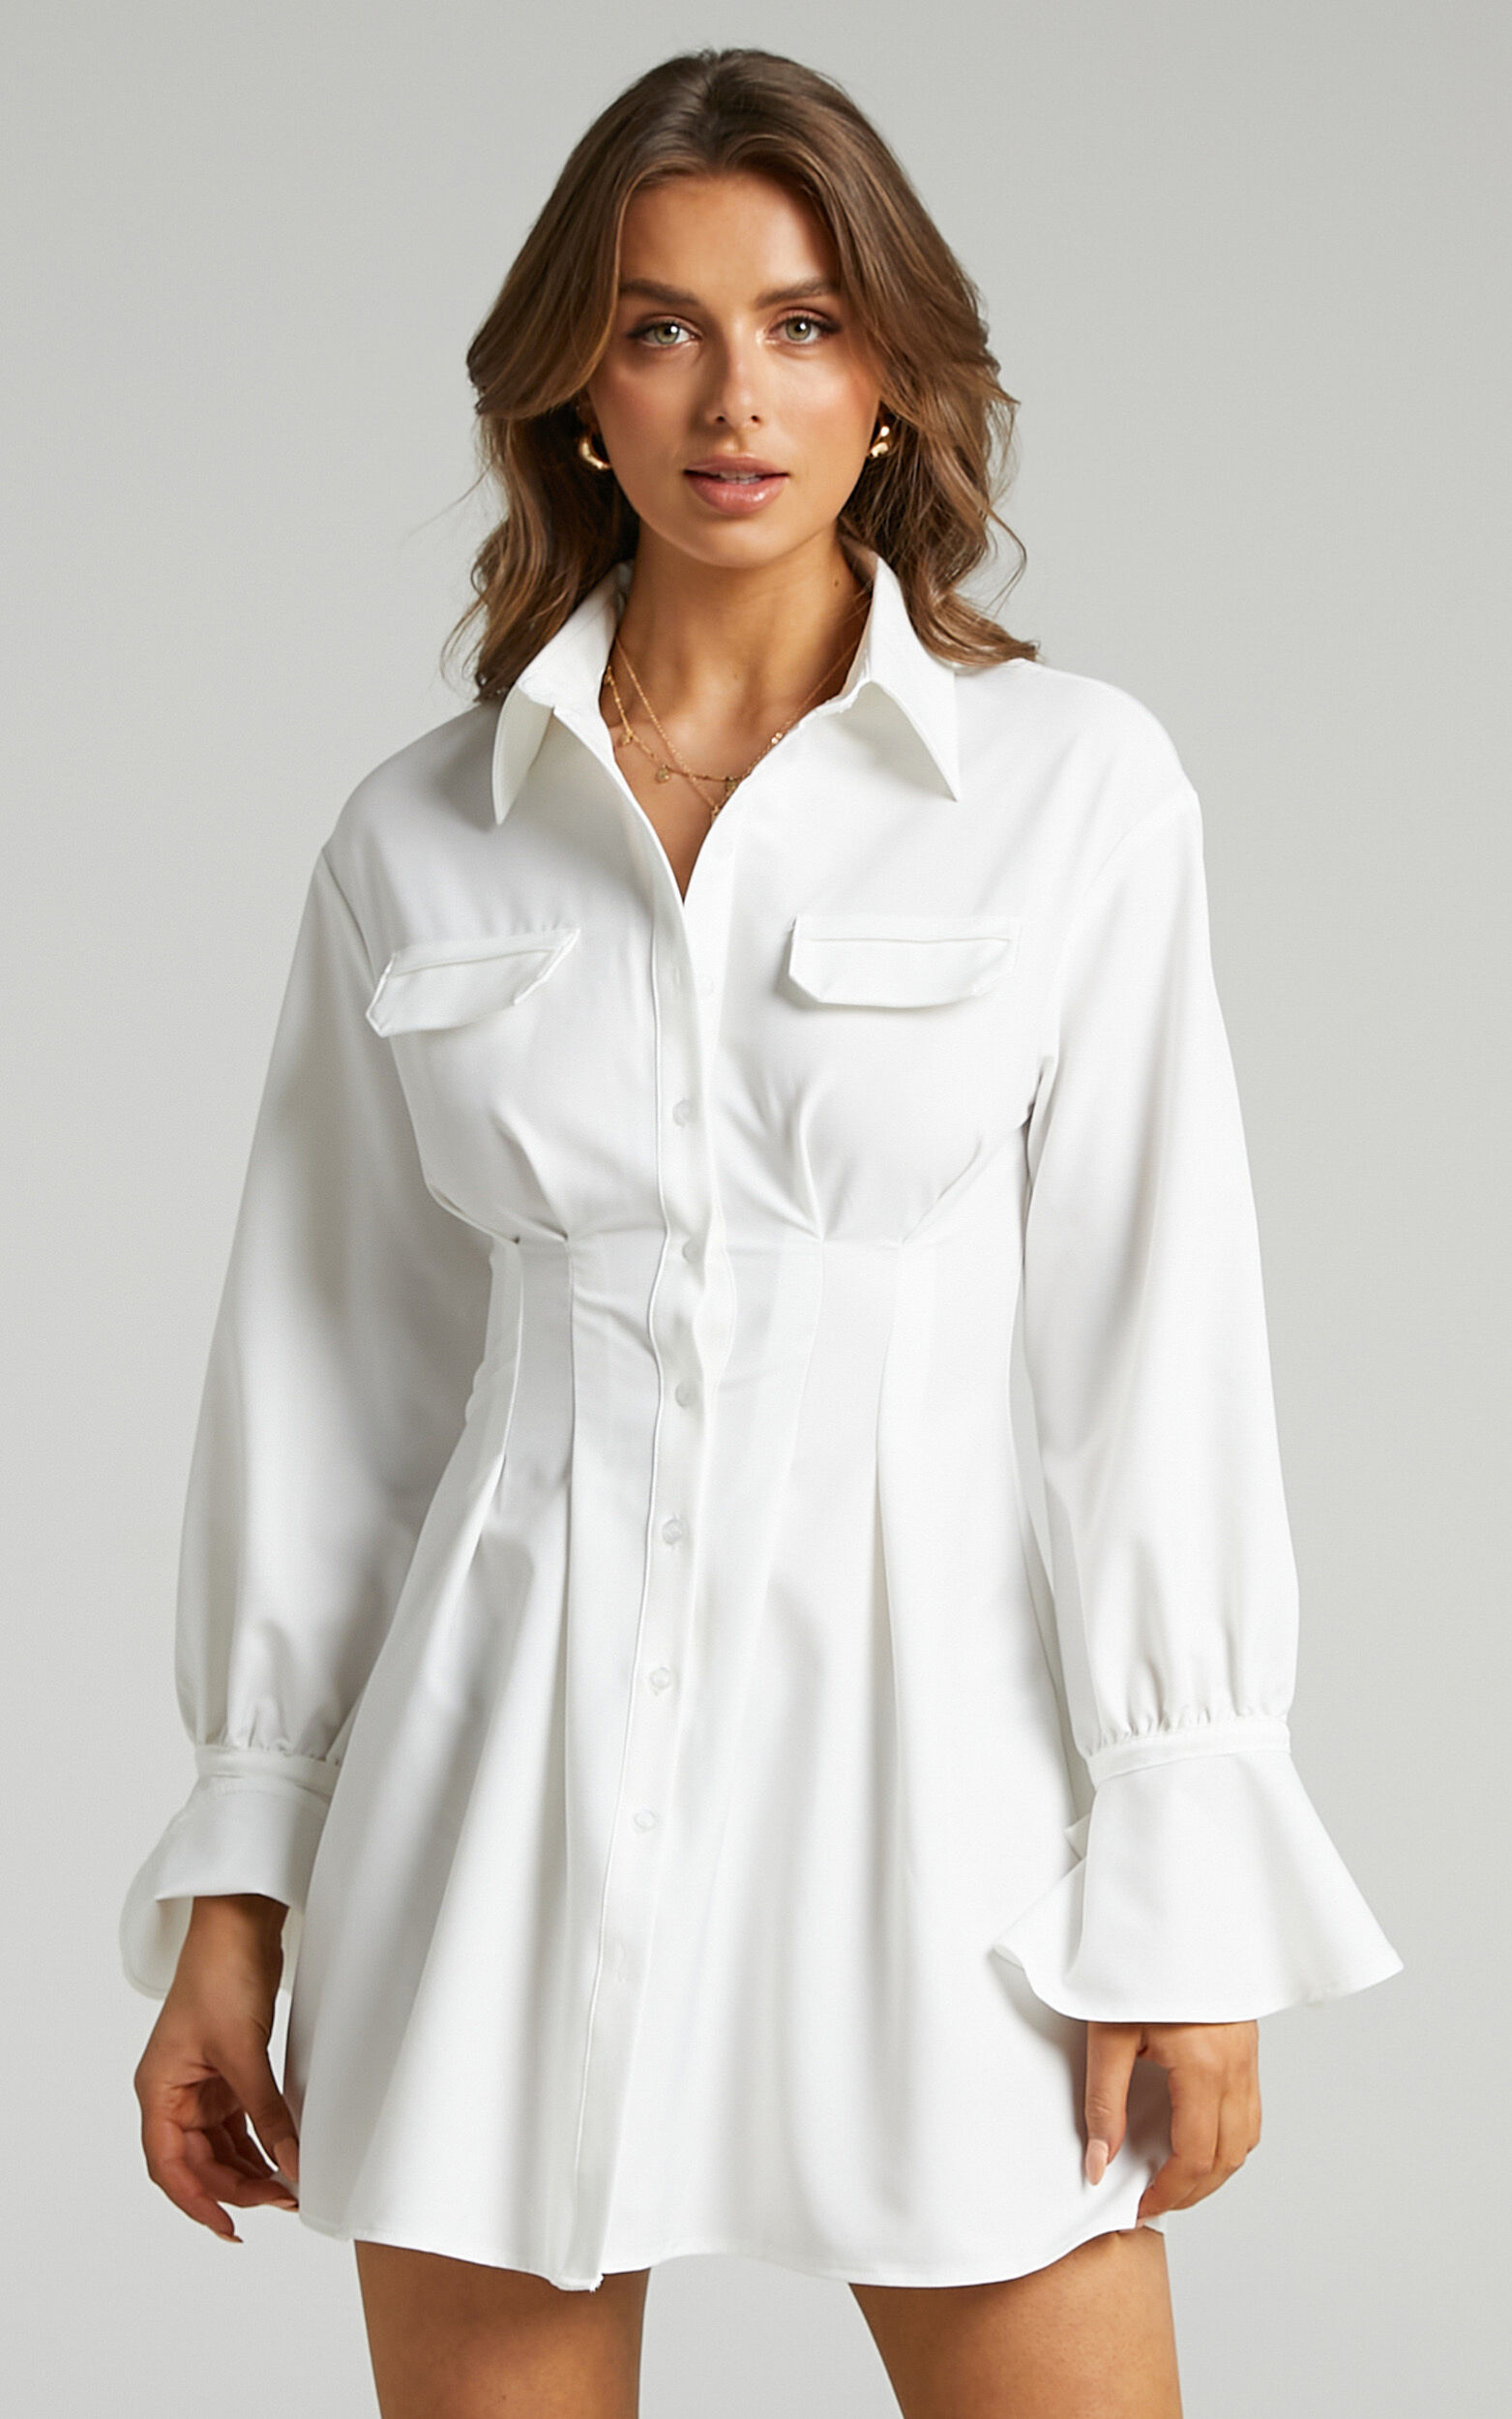 Romi Cuffed Long Sleeve Shirt Dress with Cinched Waist in White - 06, WHT1, super-hi-res image number null